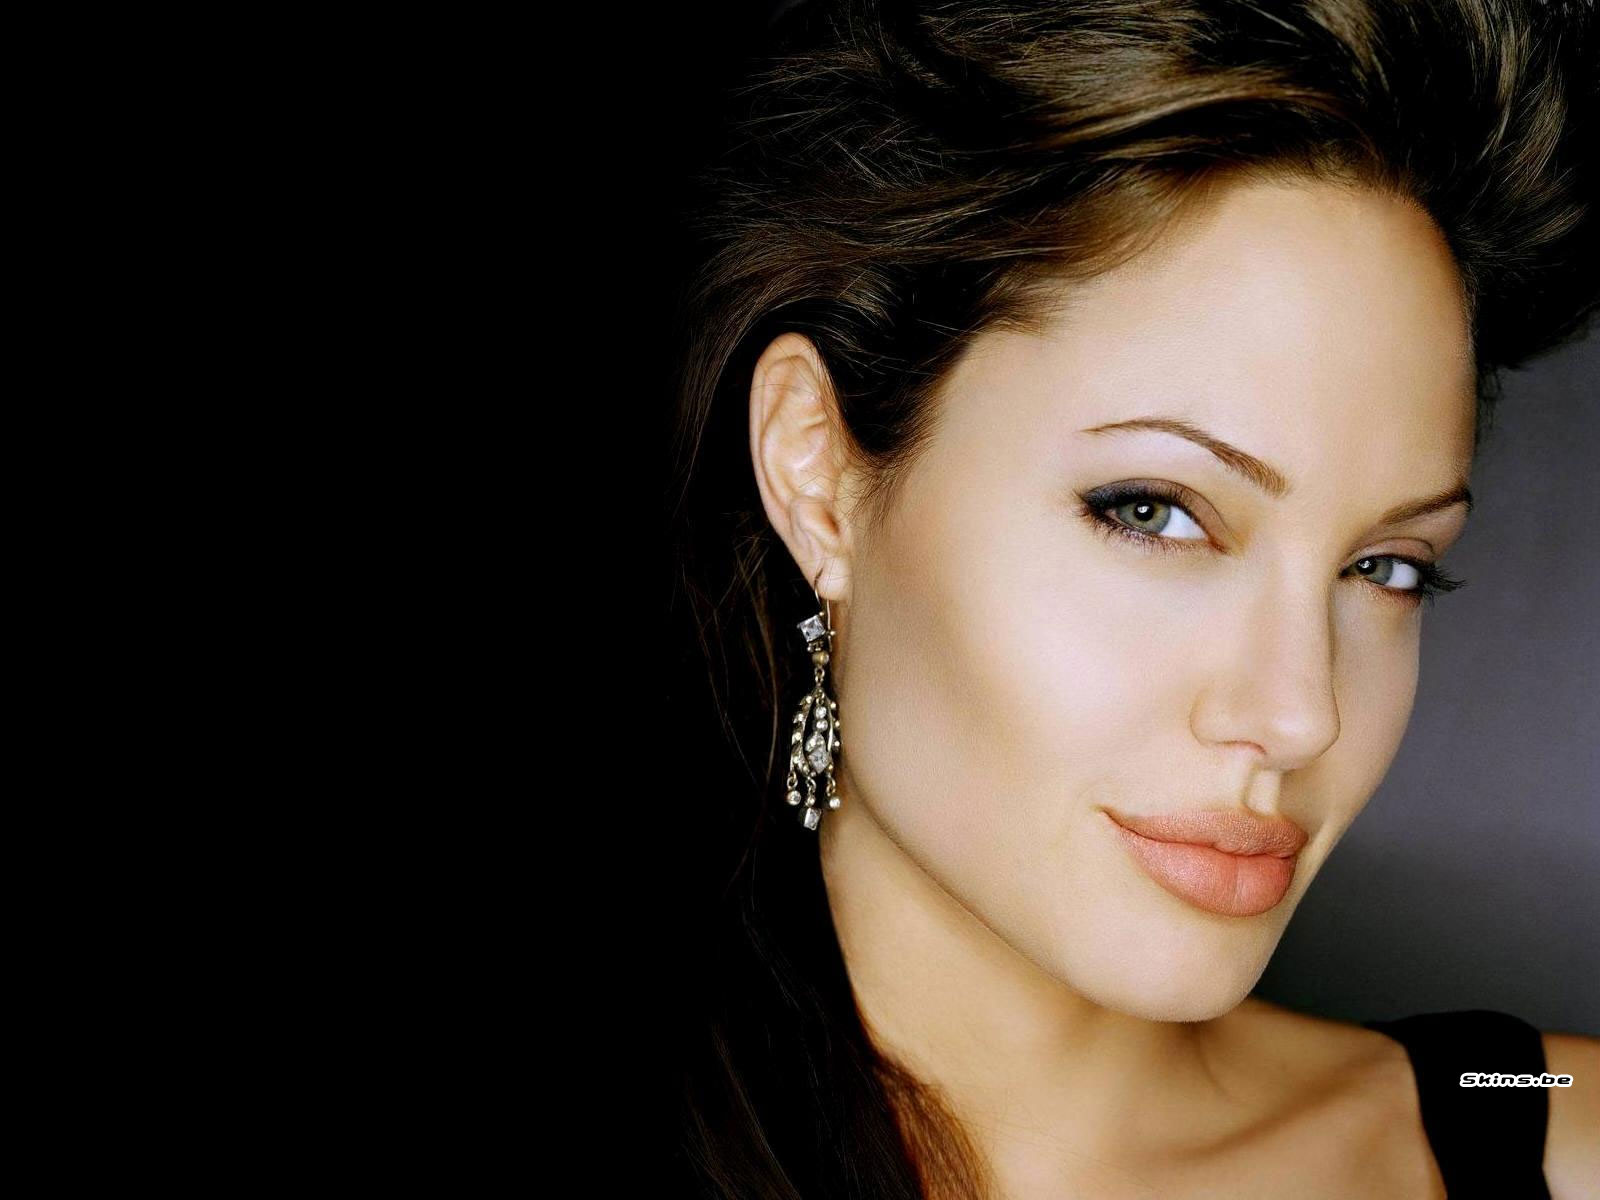 Tigress Angelina Jolie Wallpapers in jpg format for free download